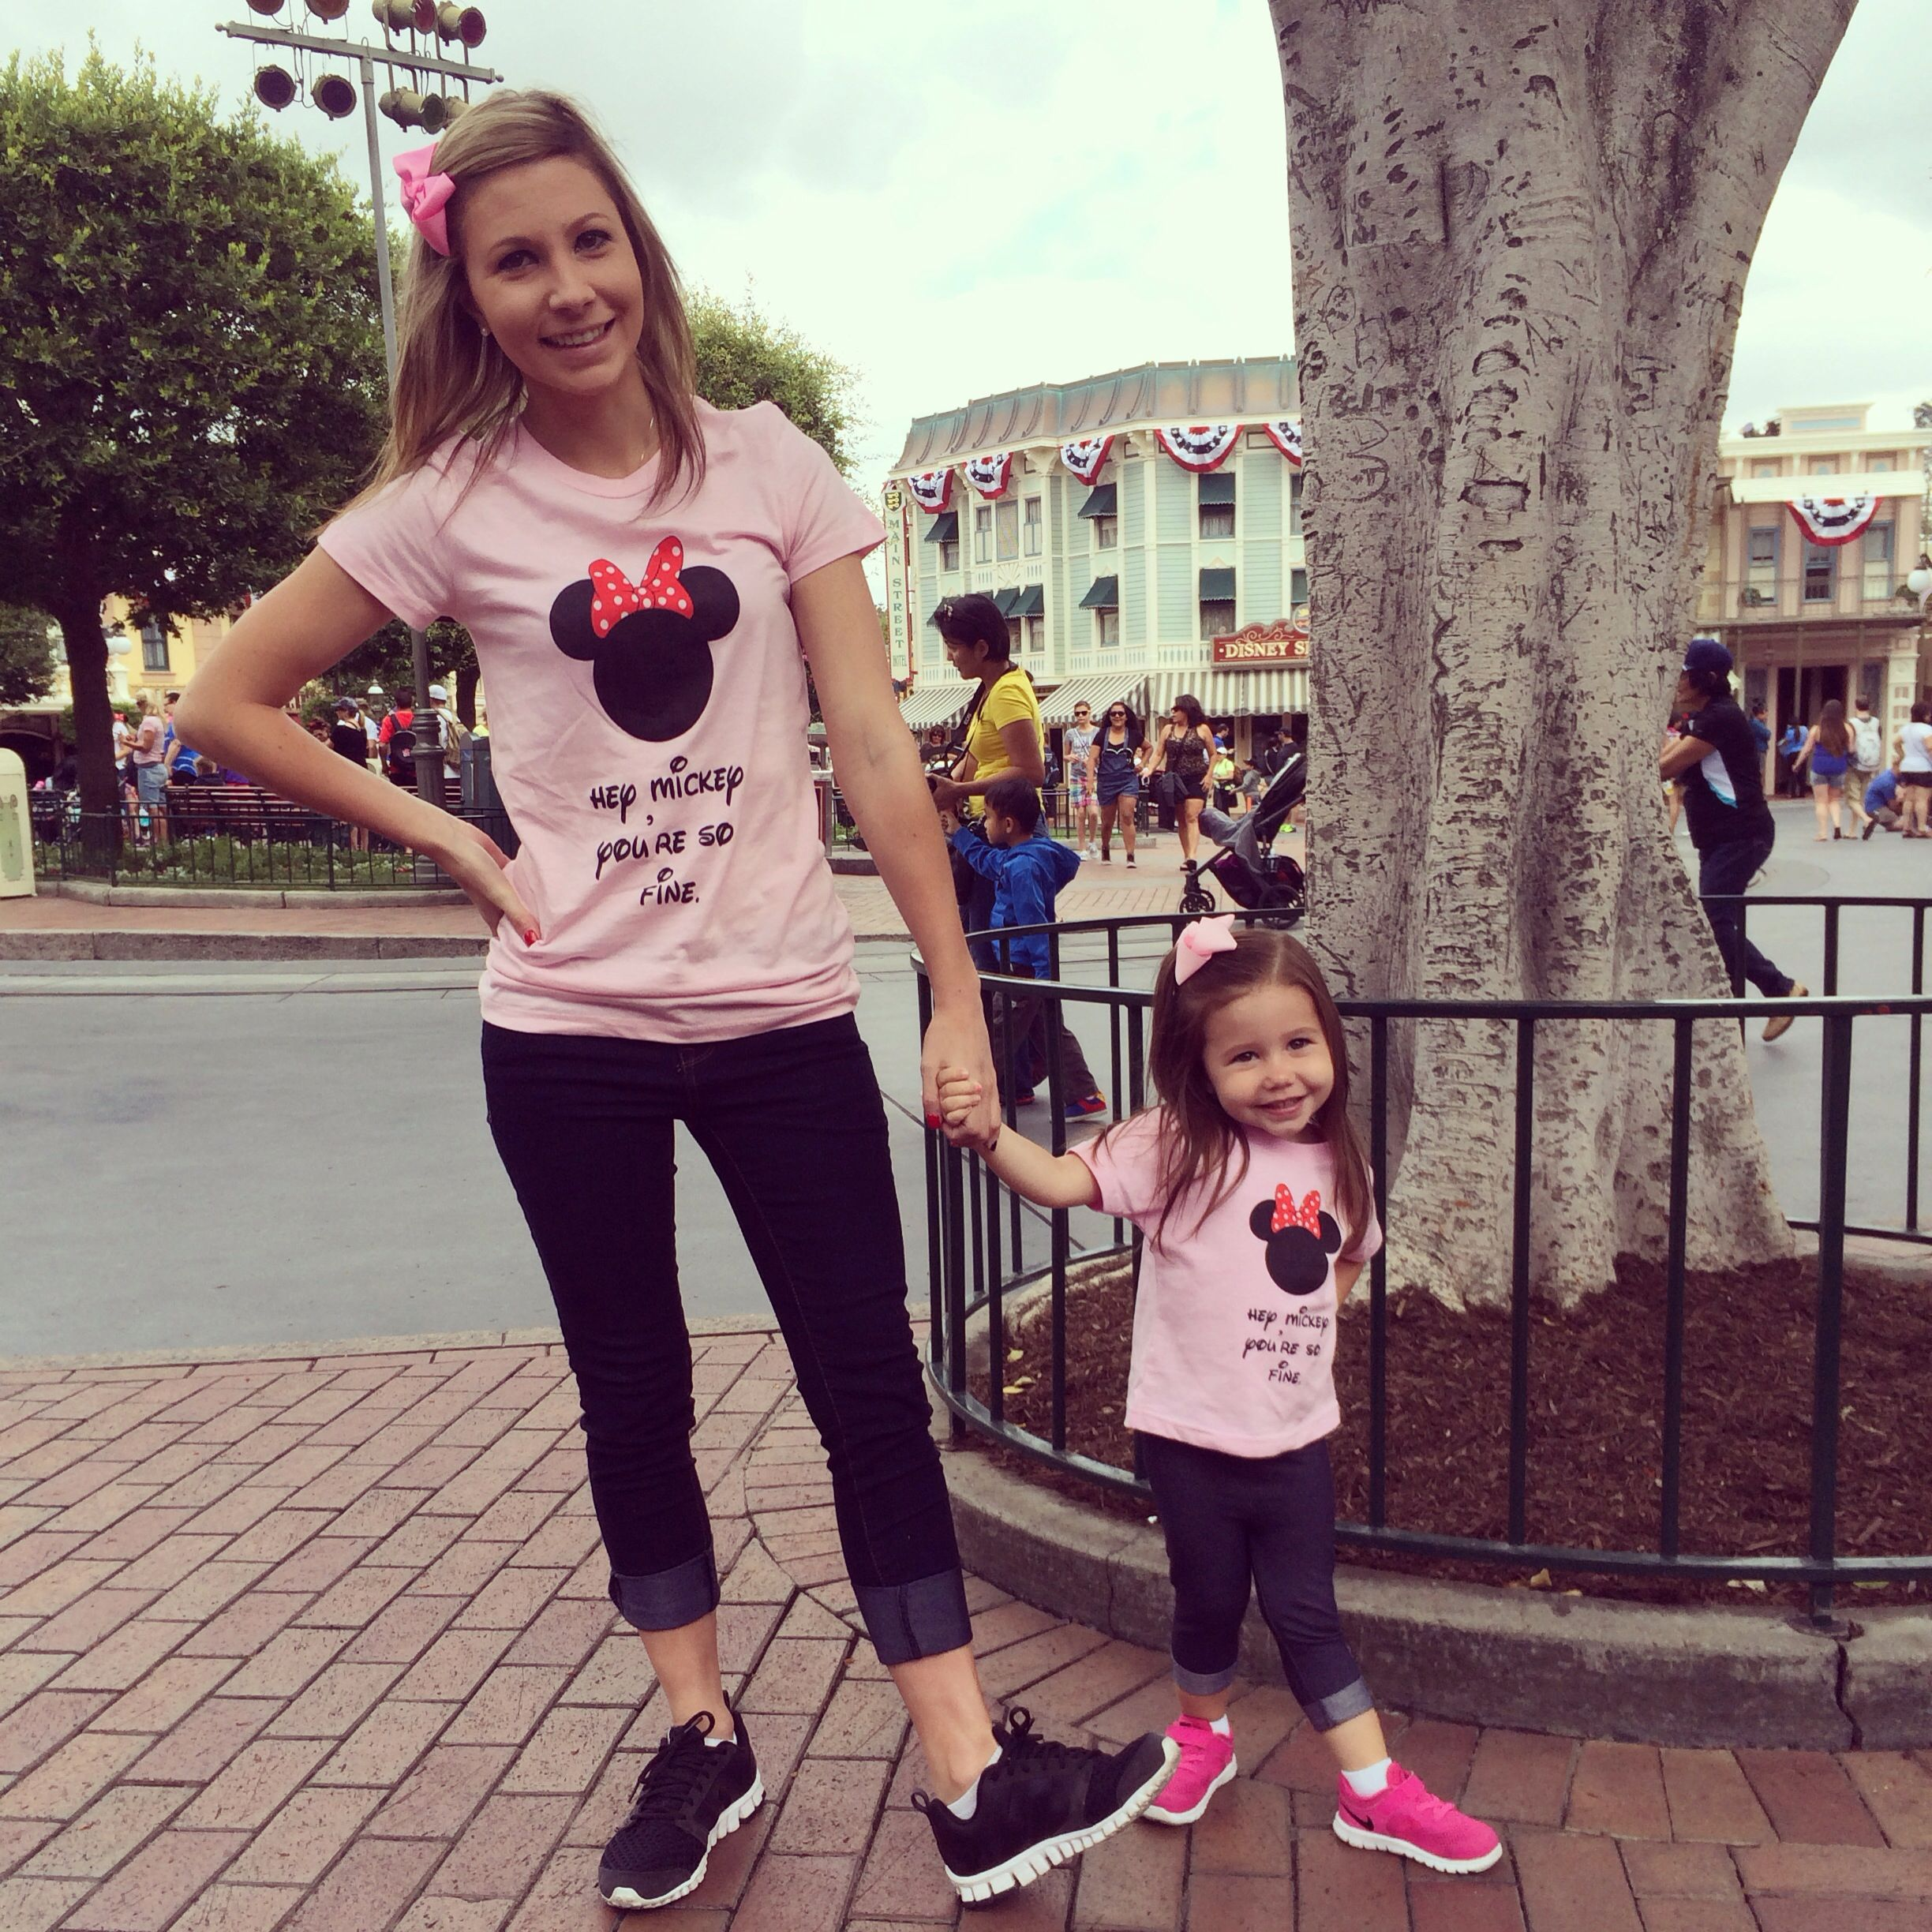 Hey Mickey You re So Fine shirts Matching Mother daughter trip